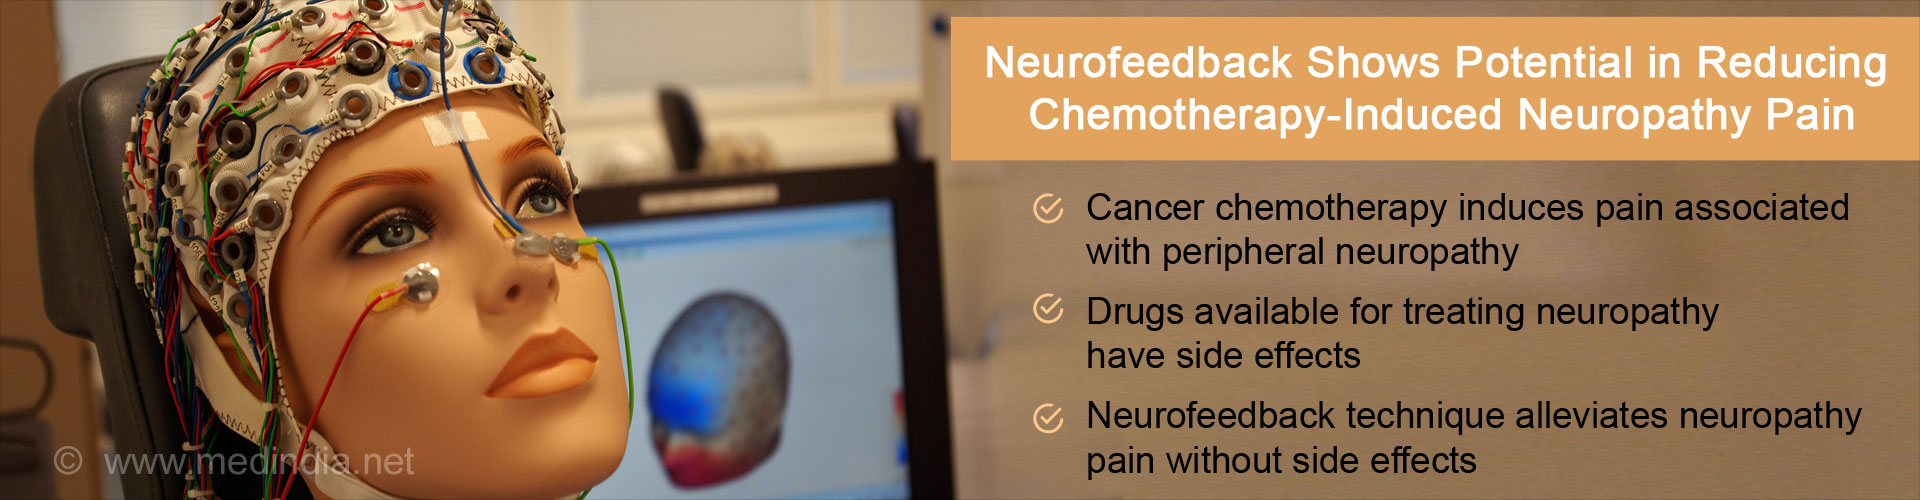 Neurofeedback Shows Potential in Reducing Chemotherapy-Induced Neuropathy Pain